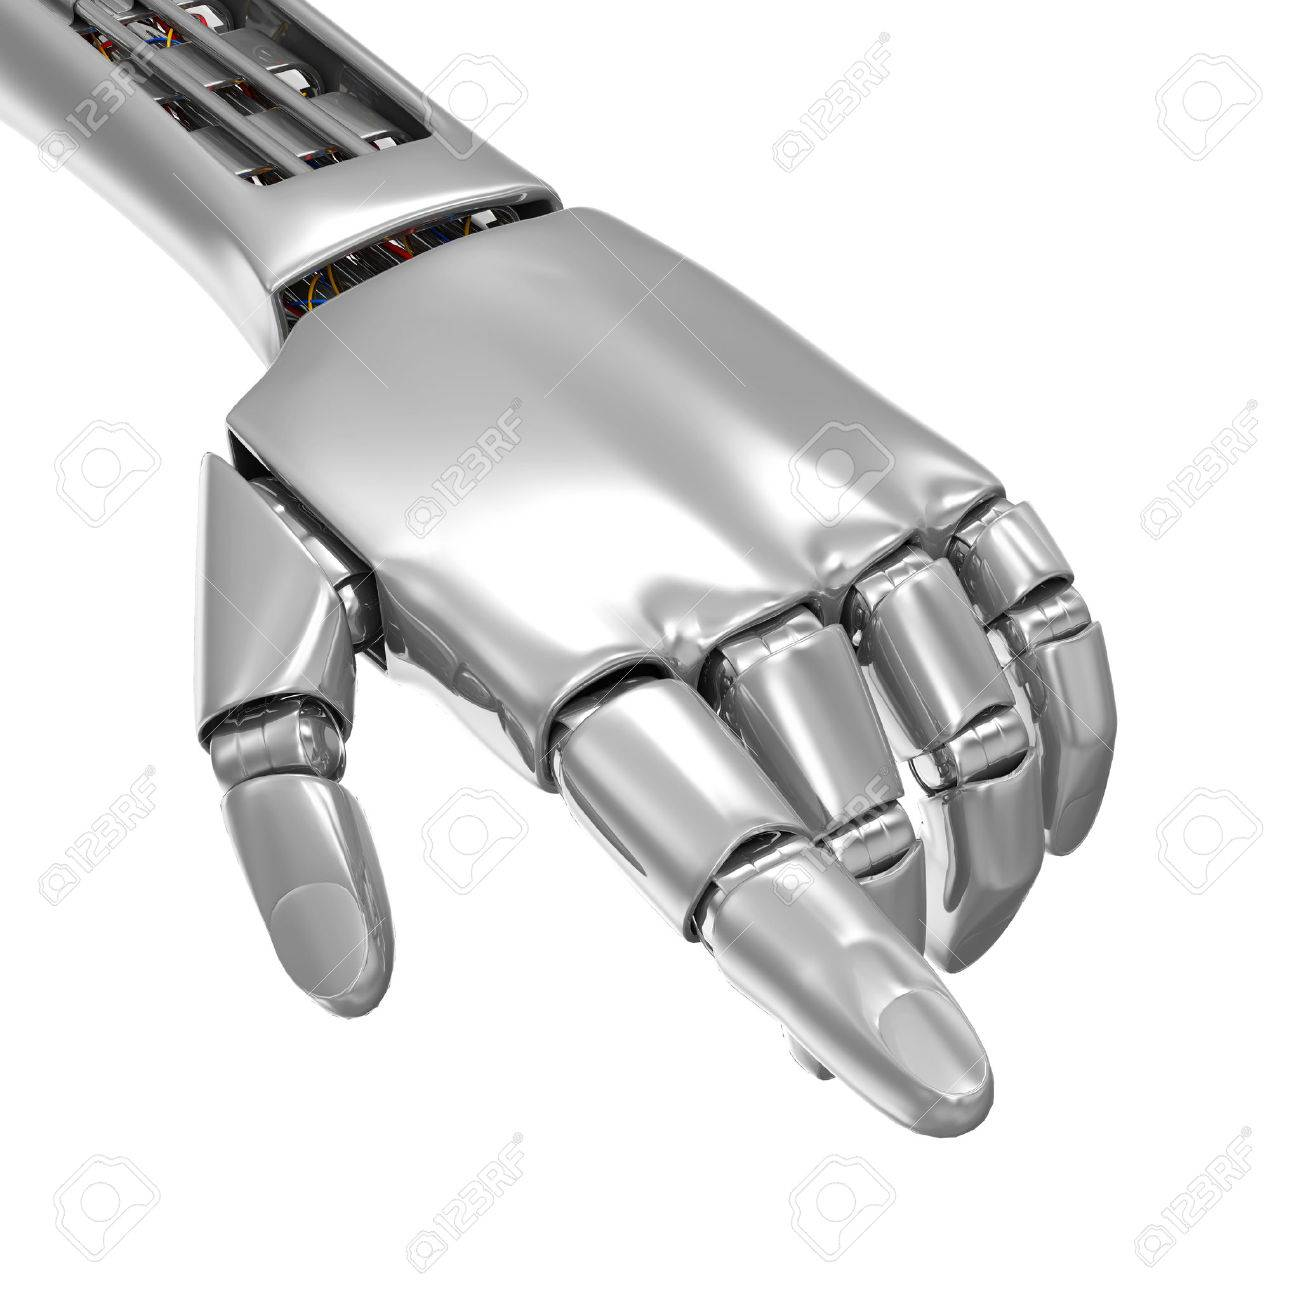 Advanced Technology Concept  Metal Robotic Hand Touching Something